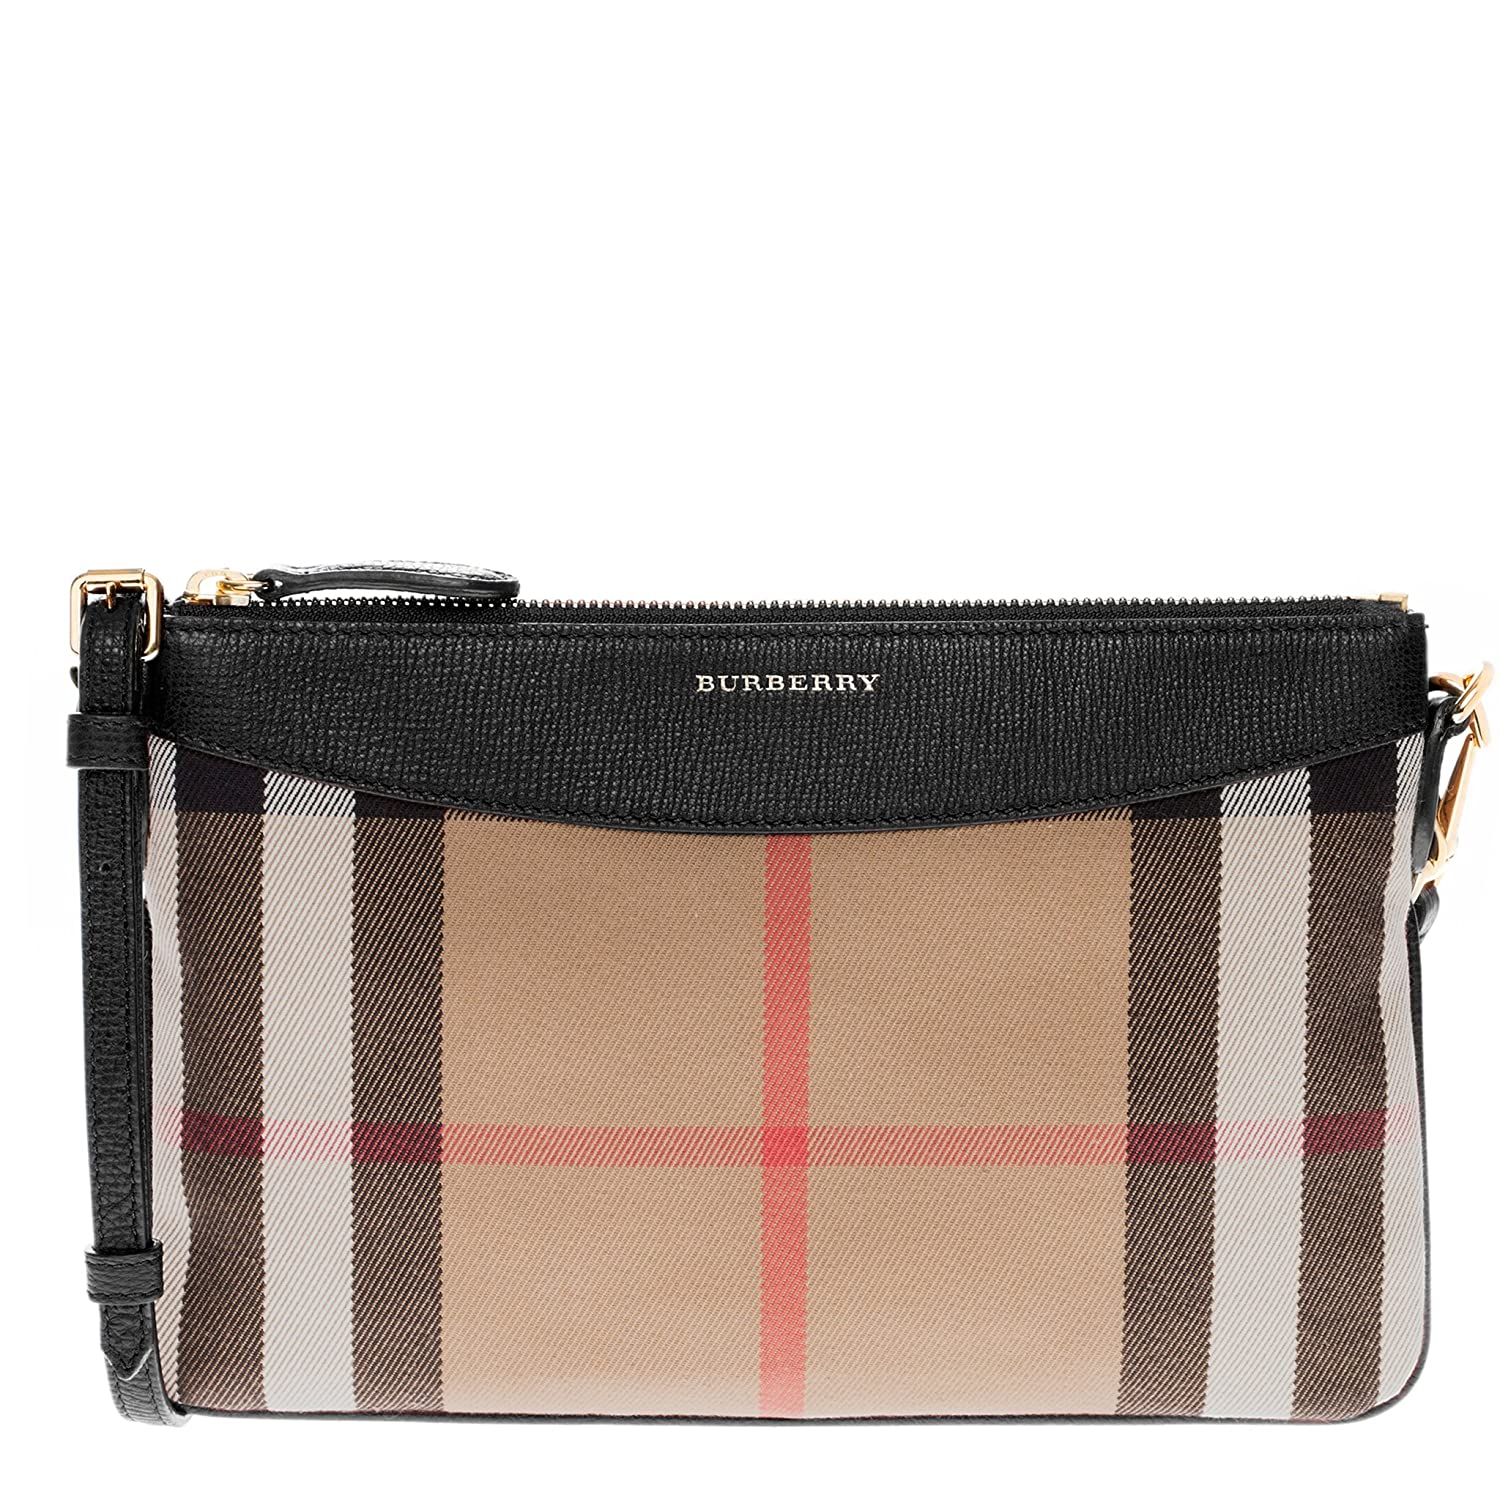 Amazon Burberry Women s House Check and Clutch Bag Black Clothing